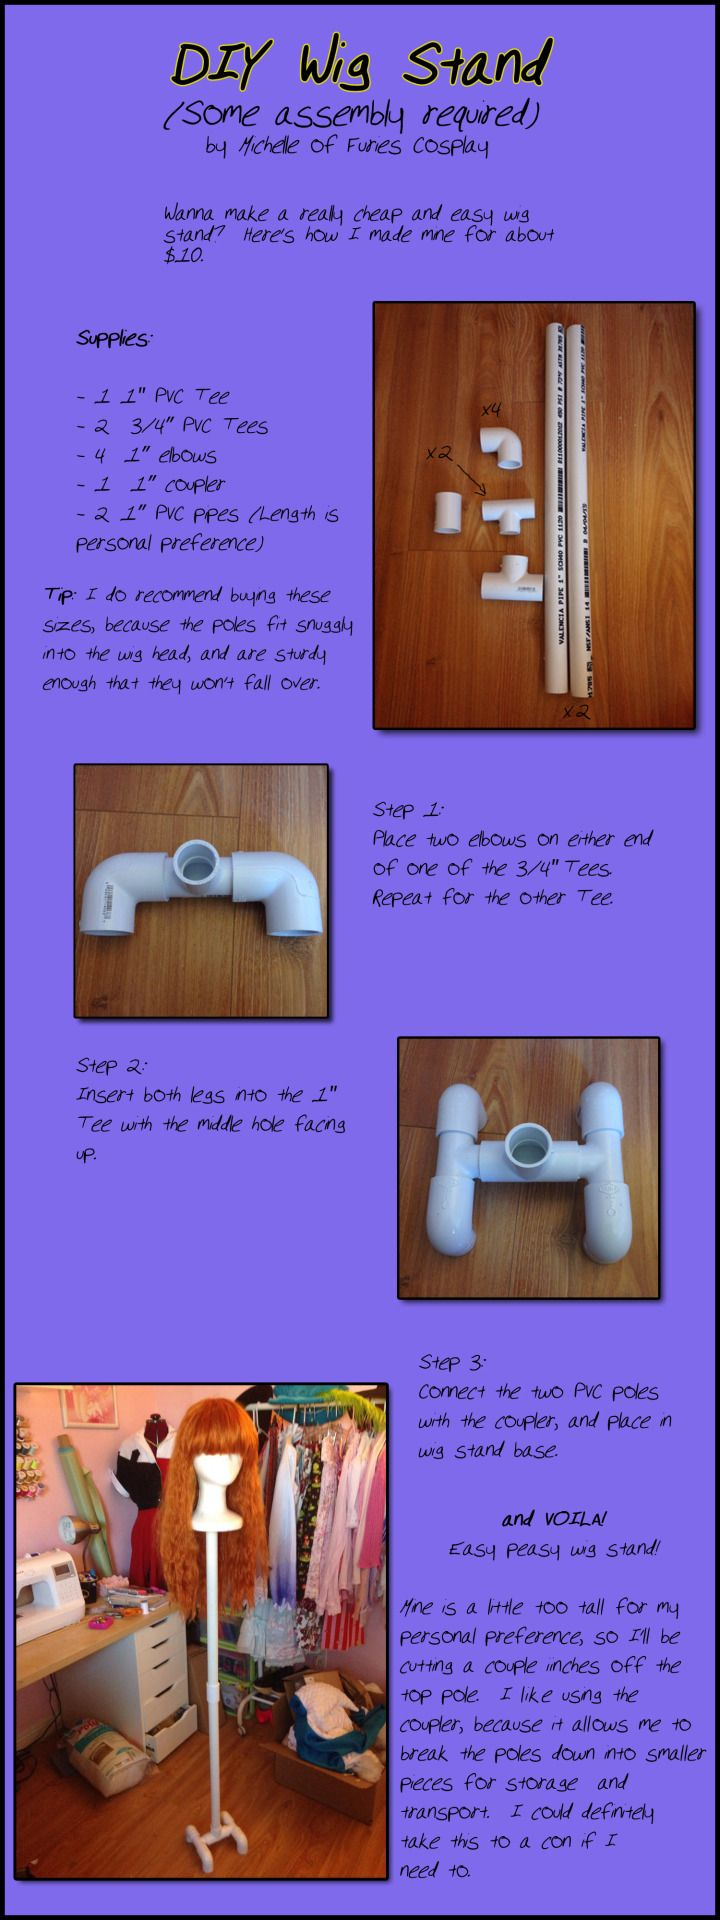 I made a thing! Went to Home Depot yesterday and got a bunch of PVC to make a wig stand. I'm pretty happy with it, so I did up this tutorial so you all can make one too.-Michelle